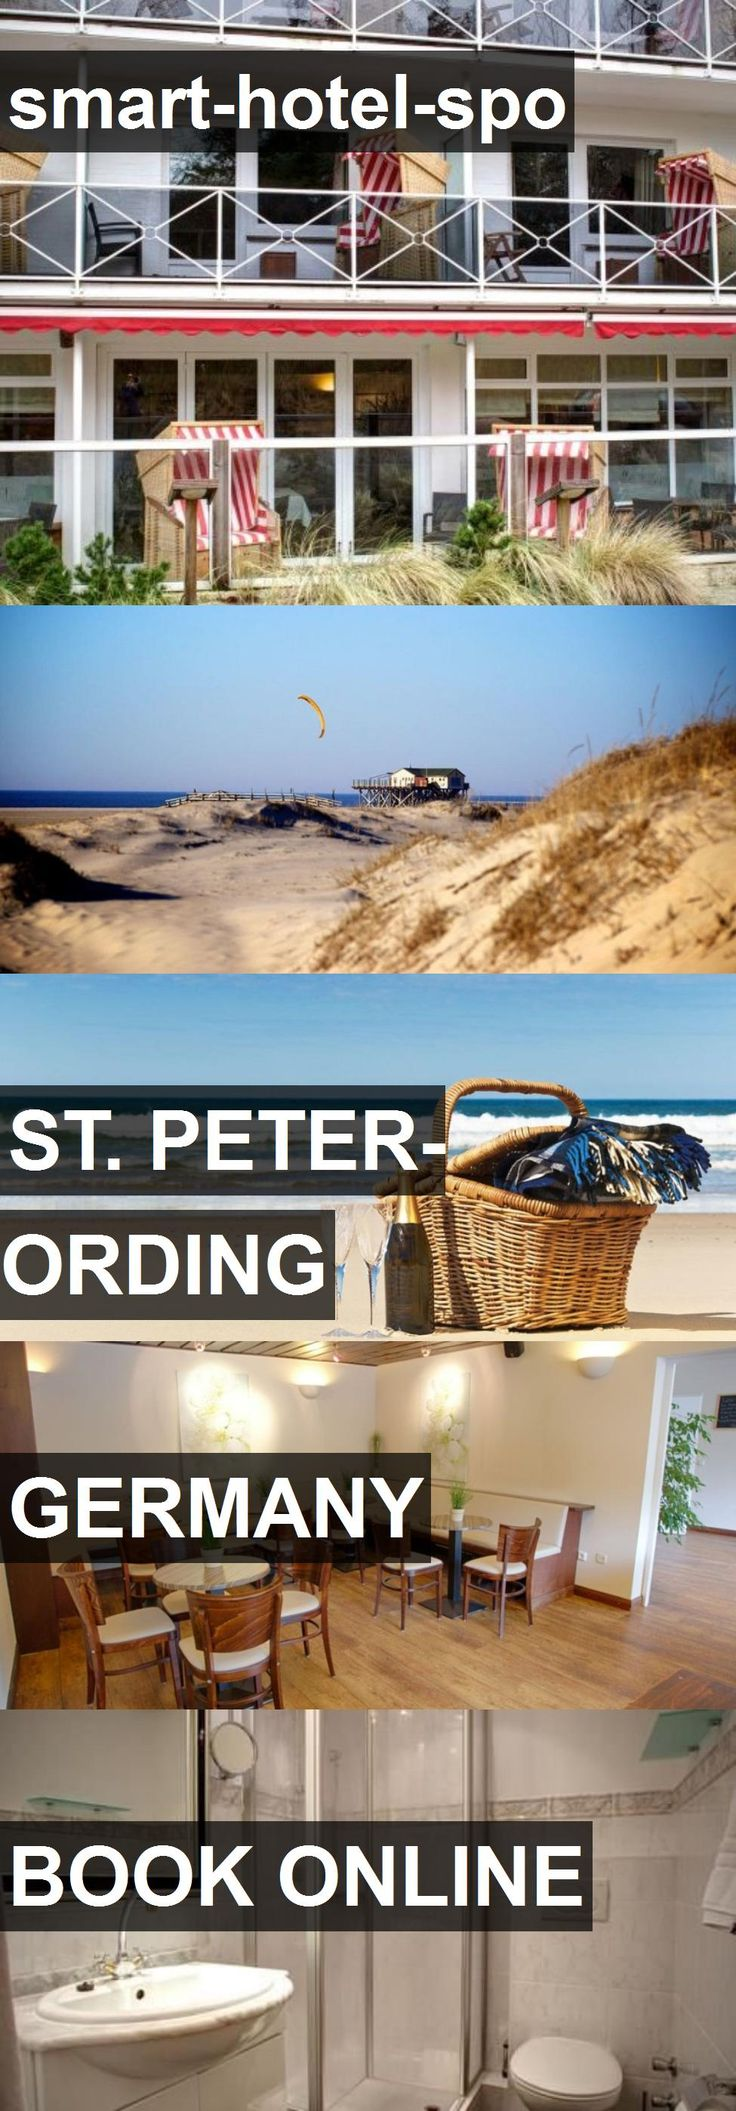 Hotel smart-hotel-spo in St. Peter-Ording, Germany. For more information, photos, reviews and best prices please follow the link. #Germany #St.Peter-Ording #hotel #travel #vacation